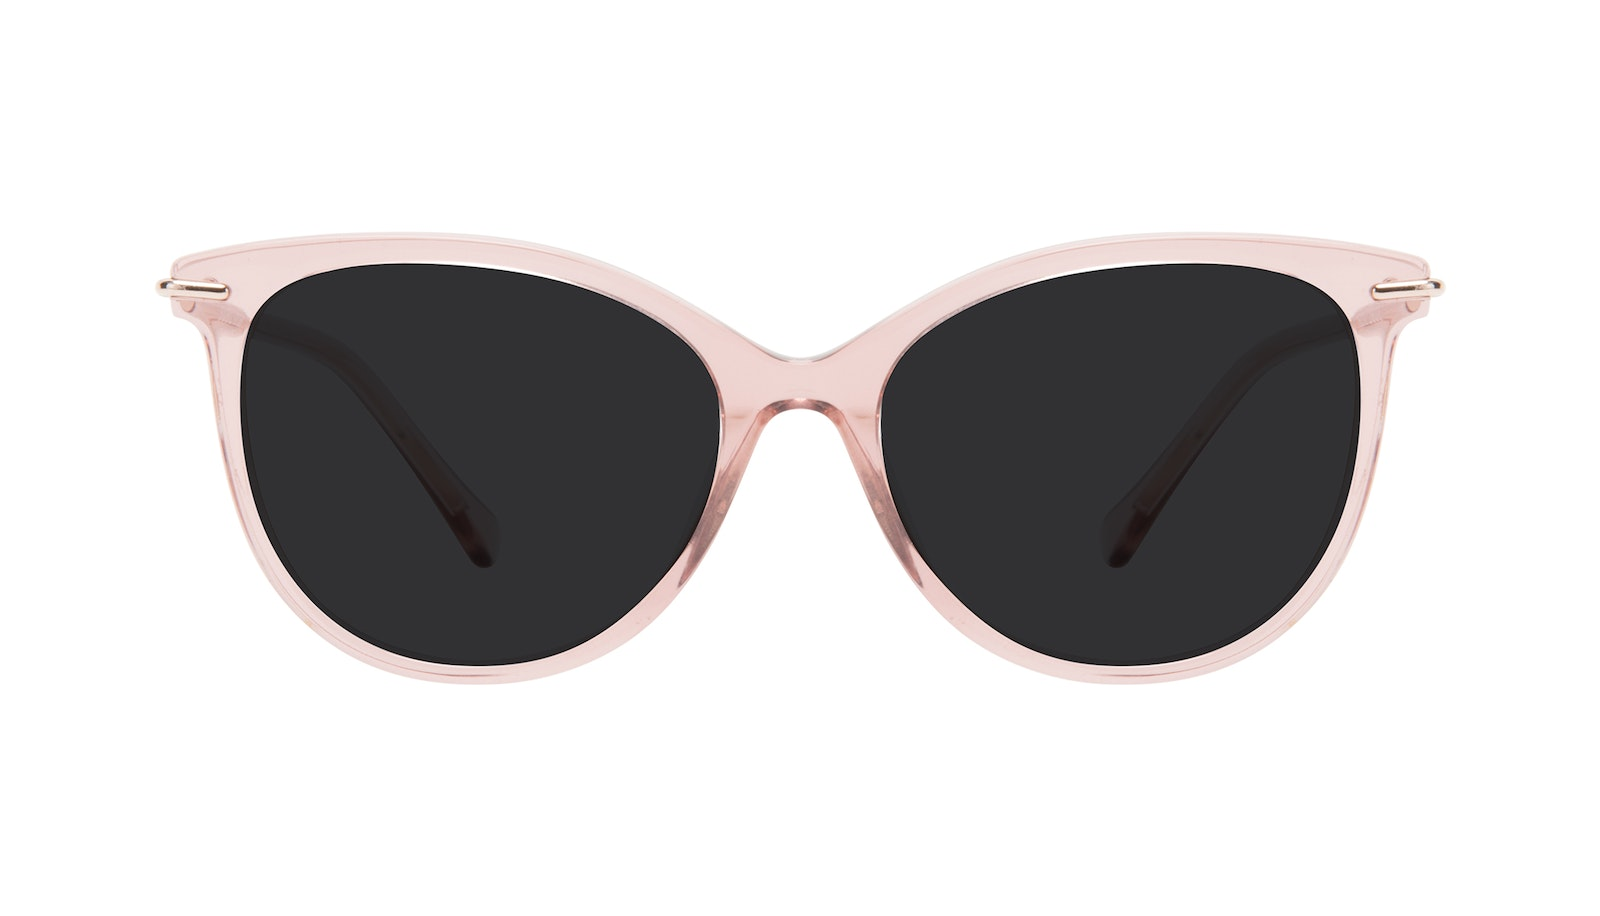 Affordable Fashion Glasses Round Sunglasses Women Sublime Rose